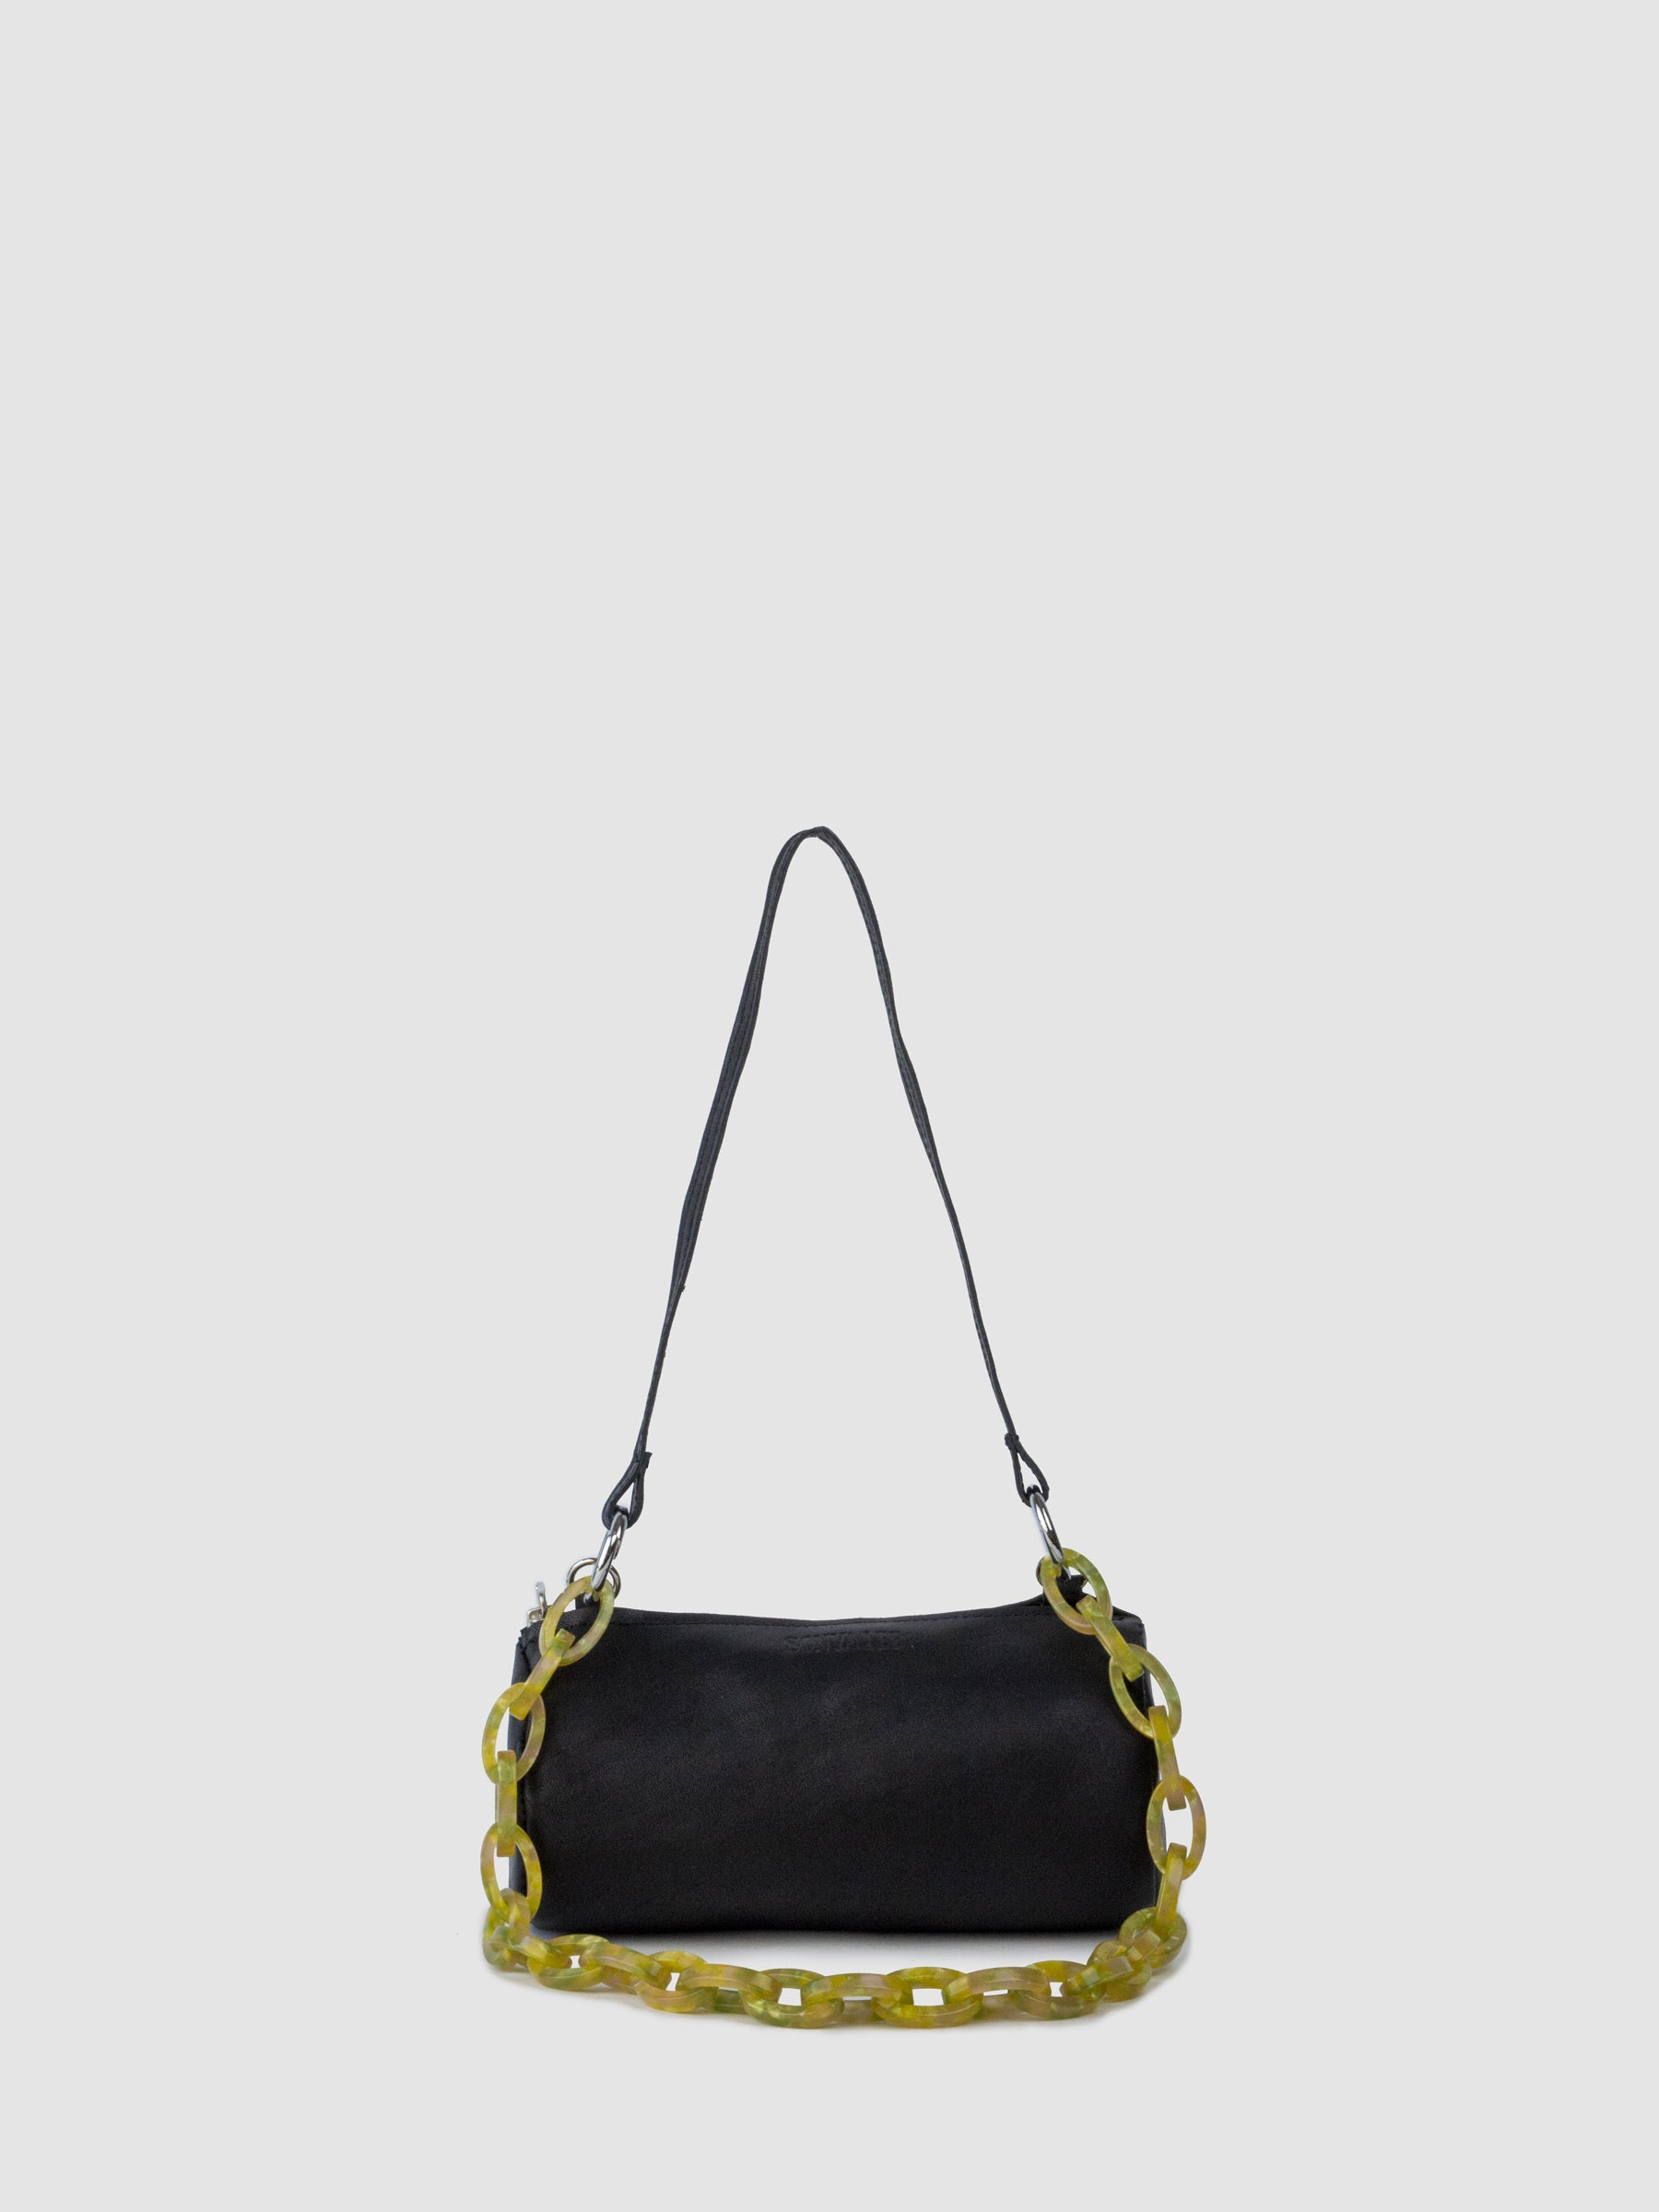 The SONYA LEE 7 bag chain on the Georgia bag in soft black.